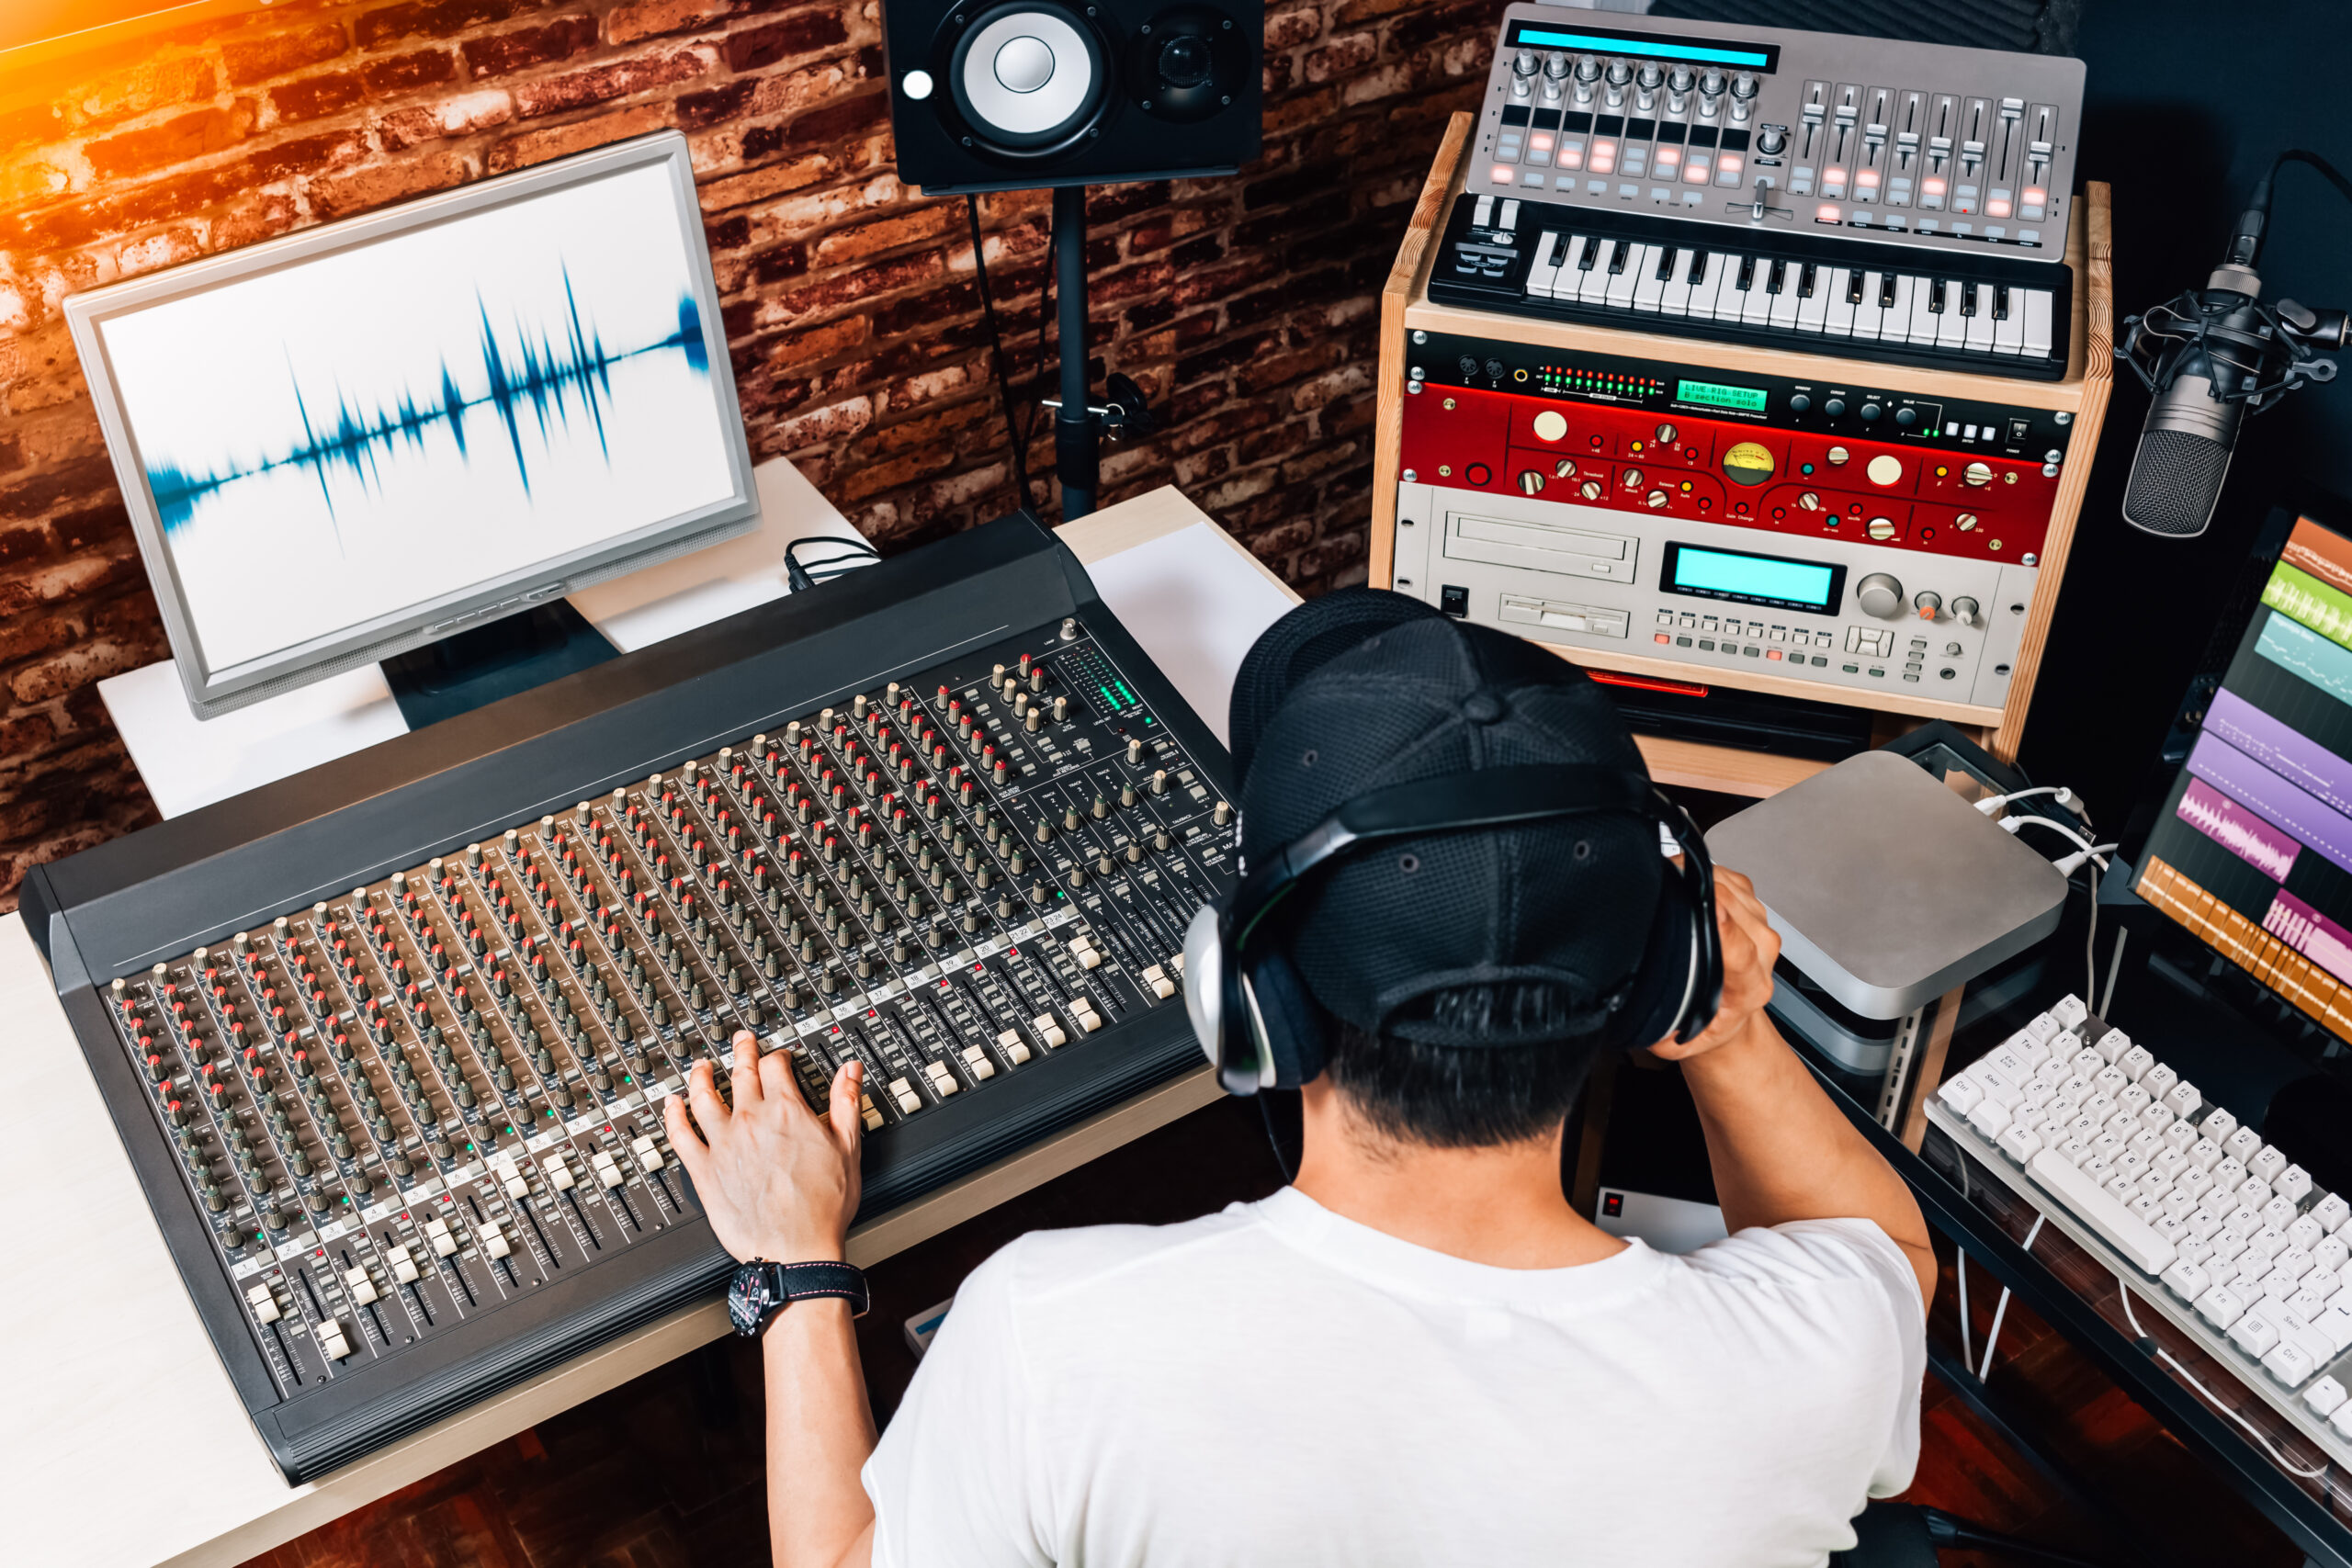 music producer, sound engineer, composer in studio. recording, broadcasting, audio video editing